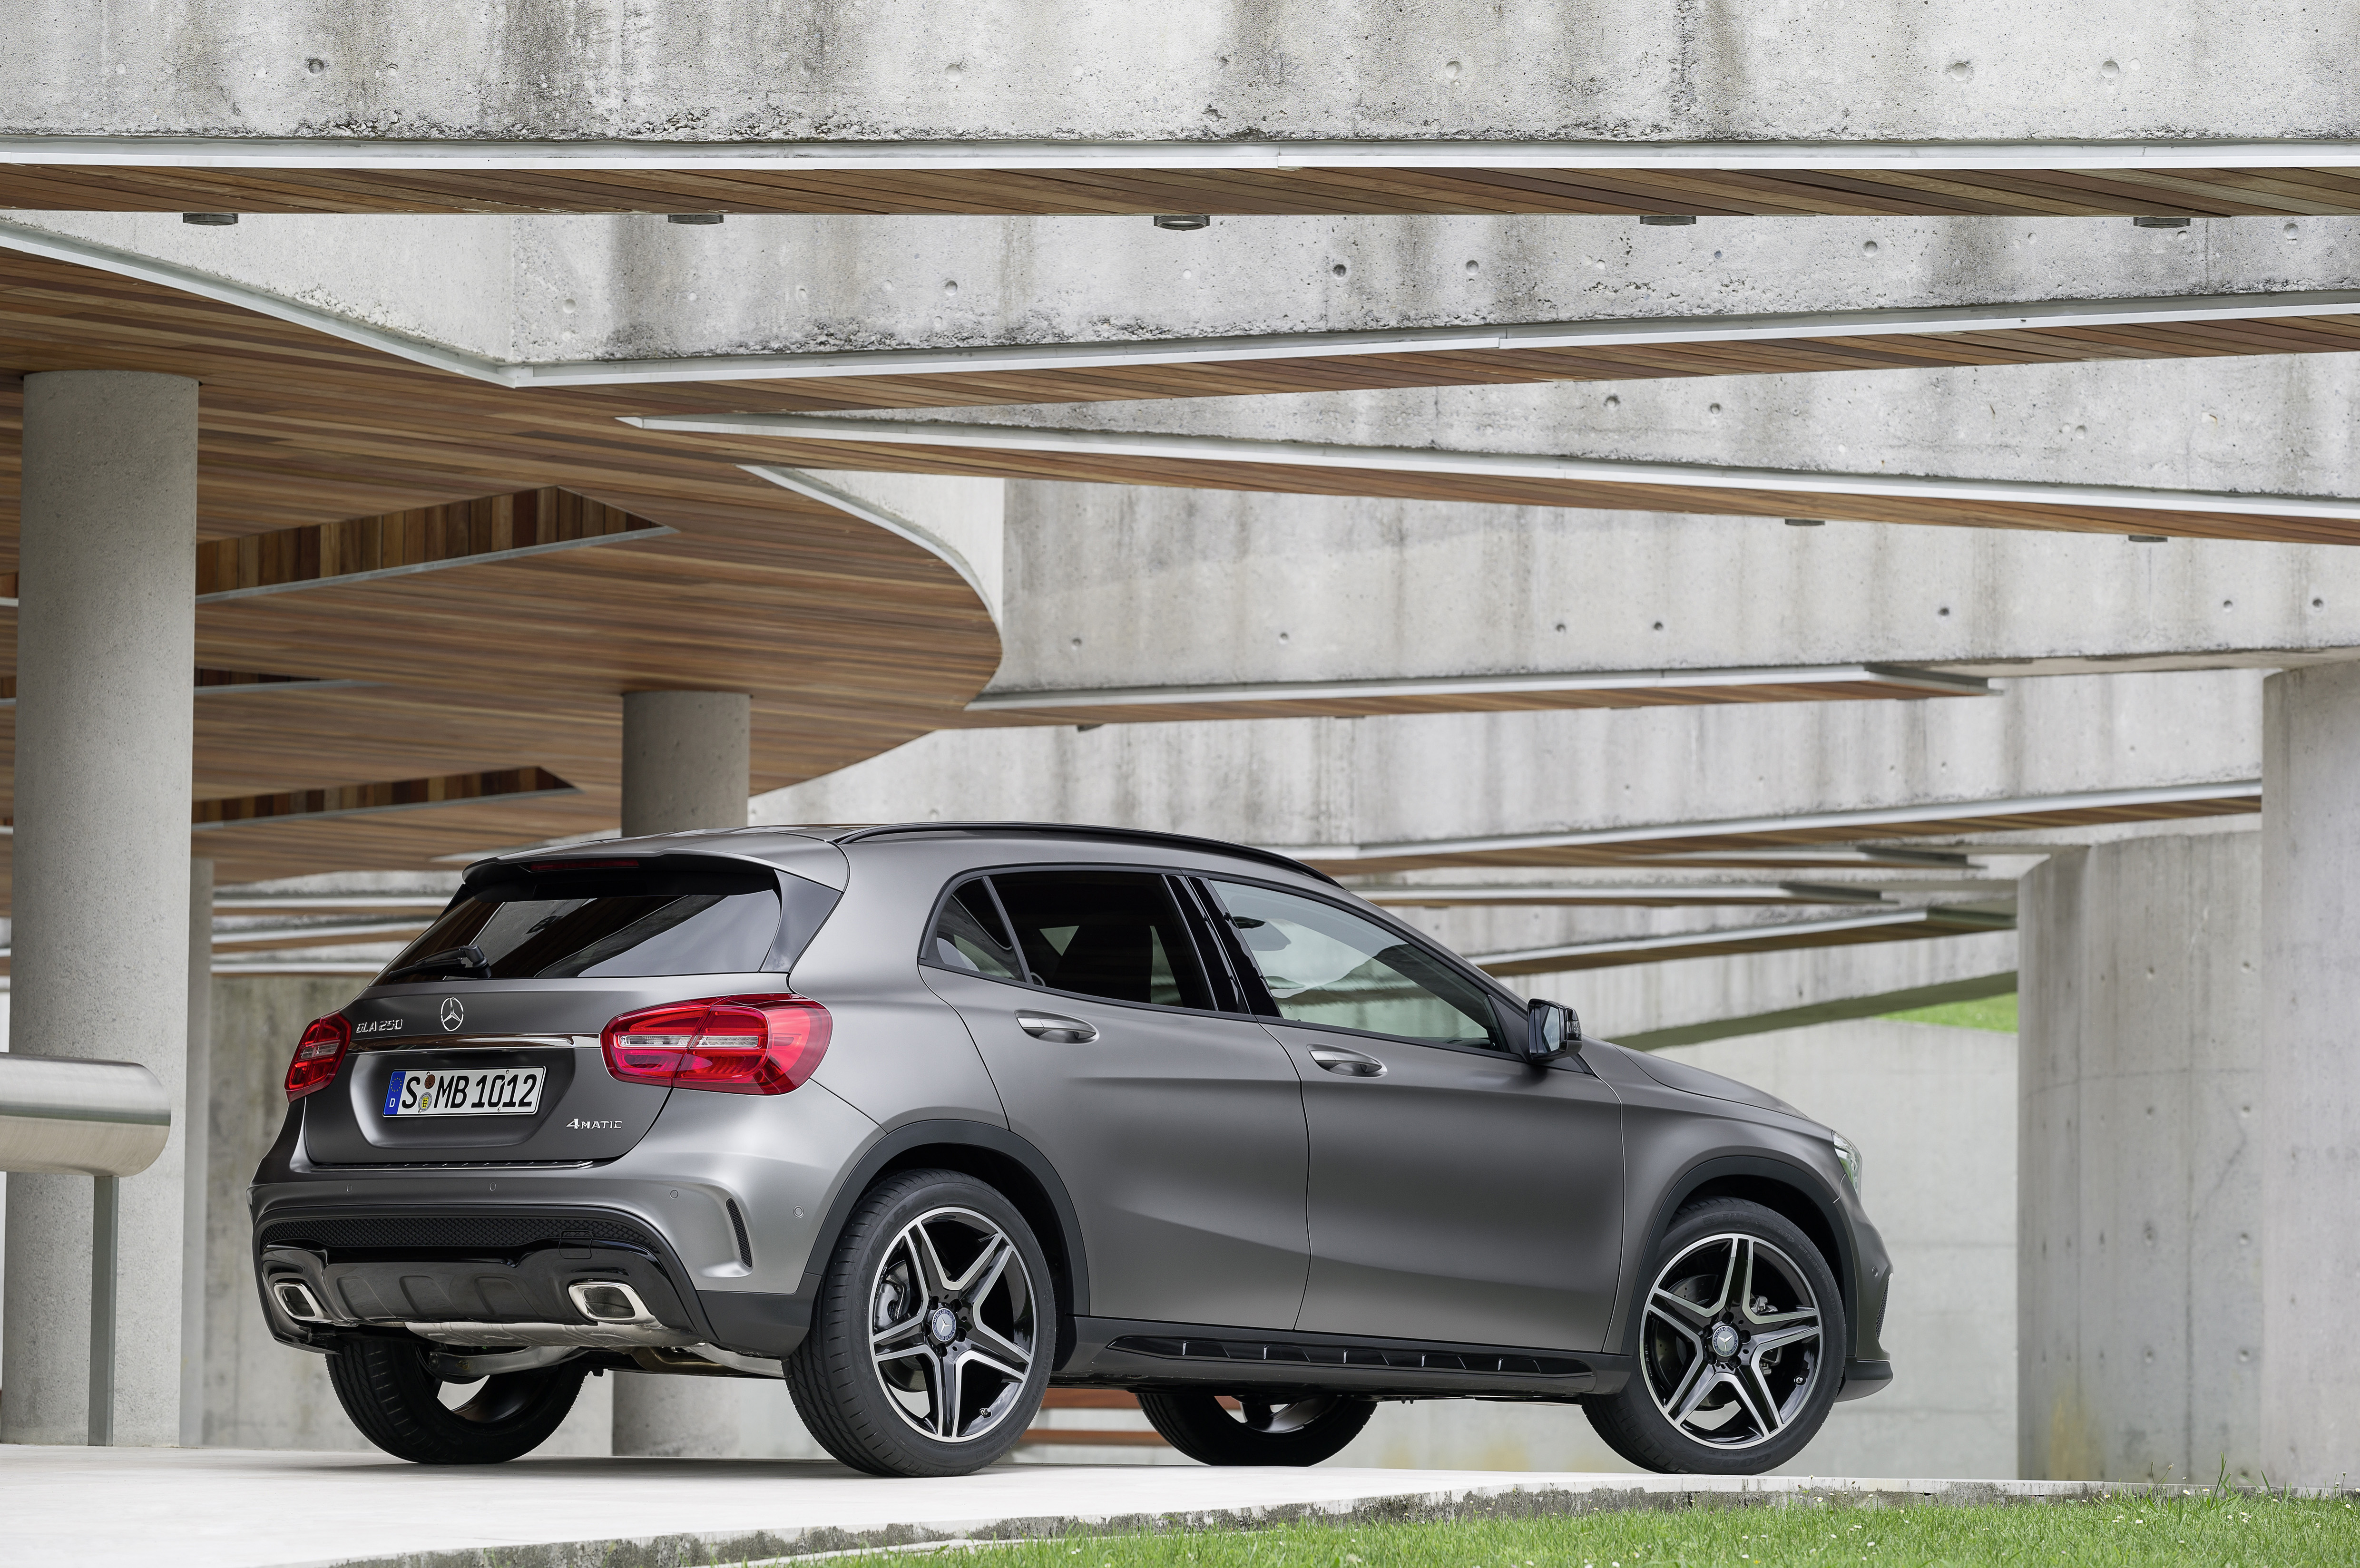 mercedes gla class thinks small and beautiful saffluence. Black Bedroom Furniture Sets. Home Design Ideas